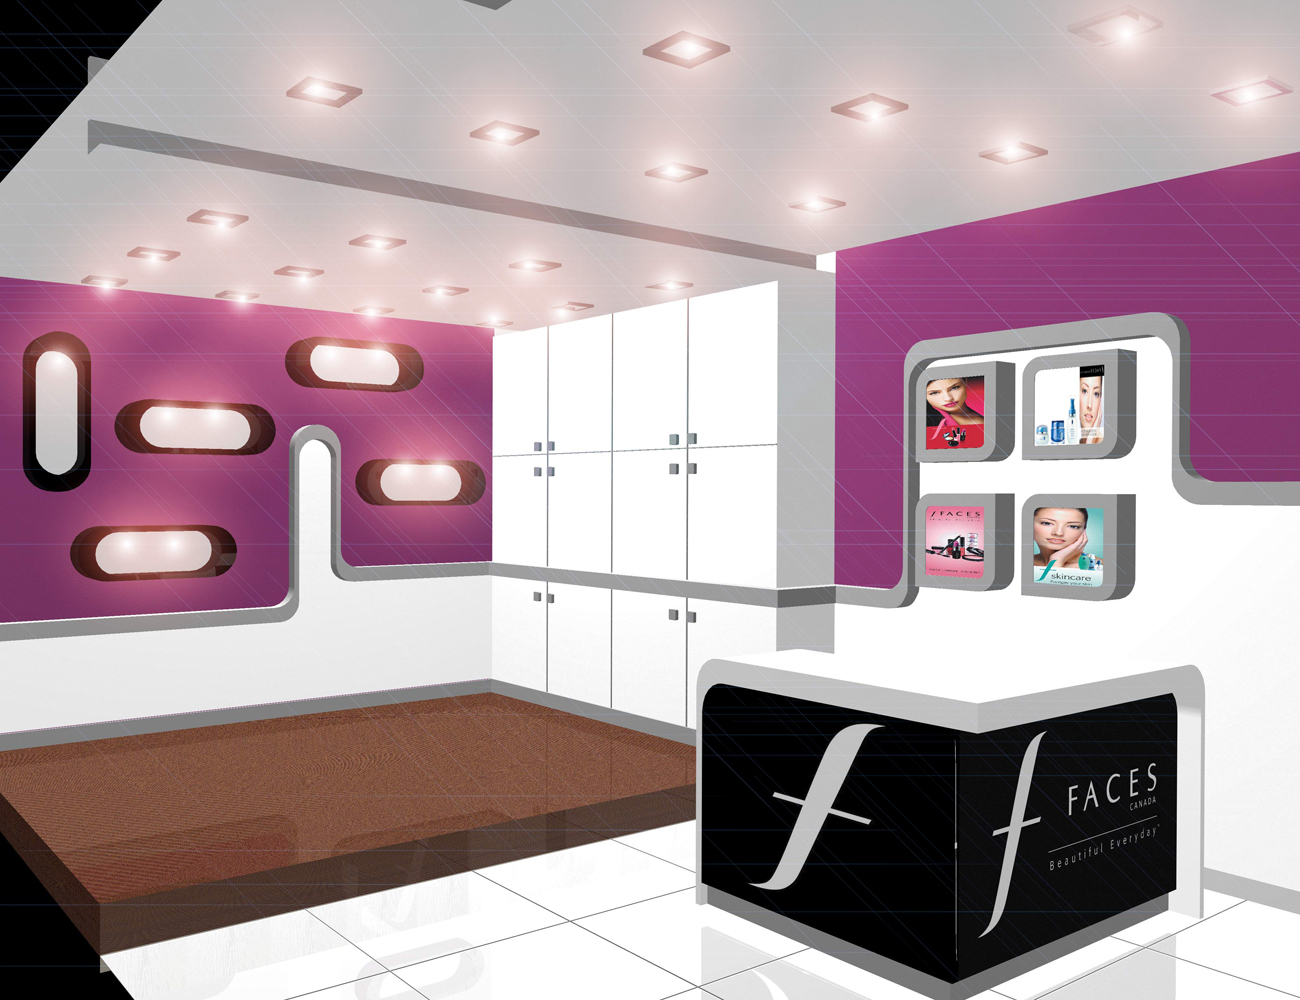 Retail store and spa, office interior designer ,Best Interior designer for clubs, night clubs, spa, beauty salon, clinic, restaurants, Interior designer for high end residence, Interior designer for clubs, night clubs, spa, beauty salon, clinic.